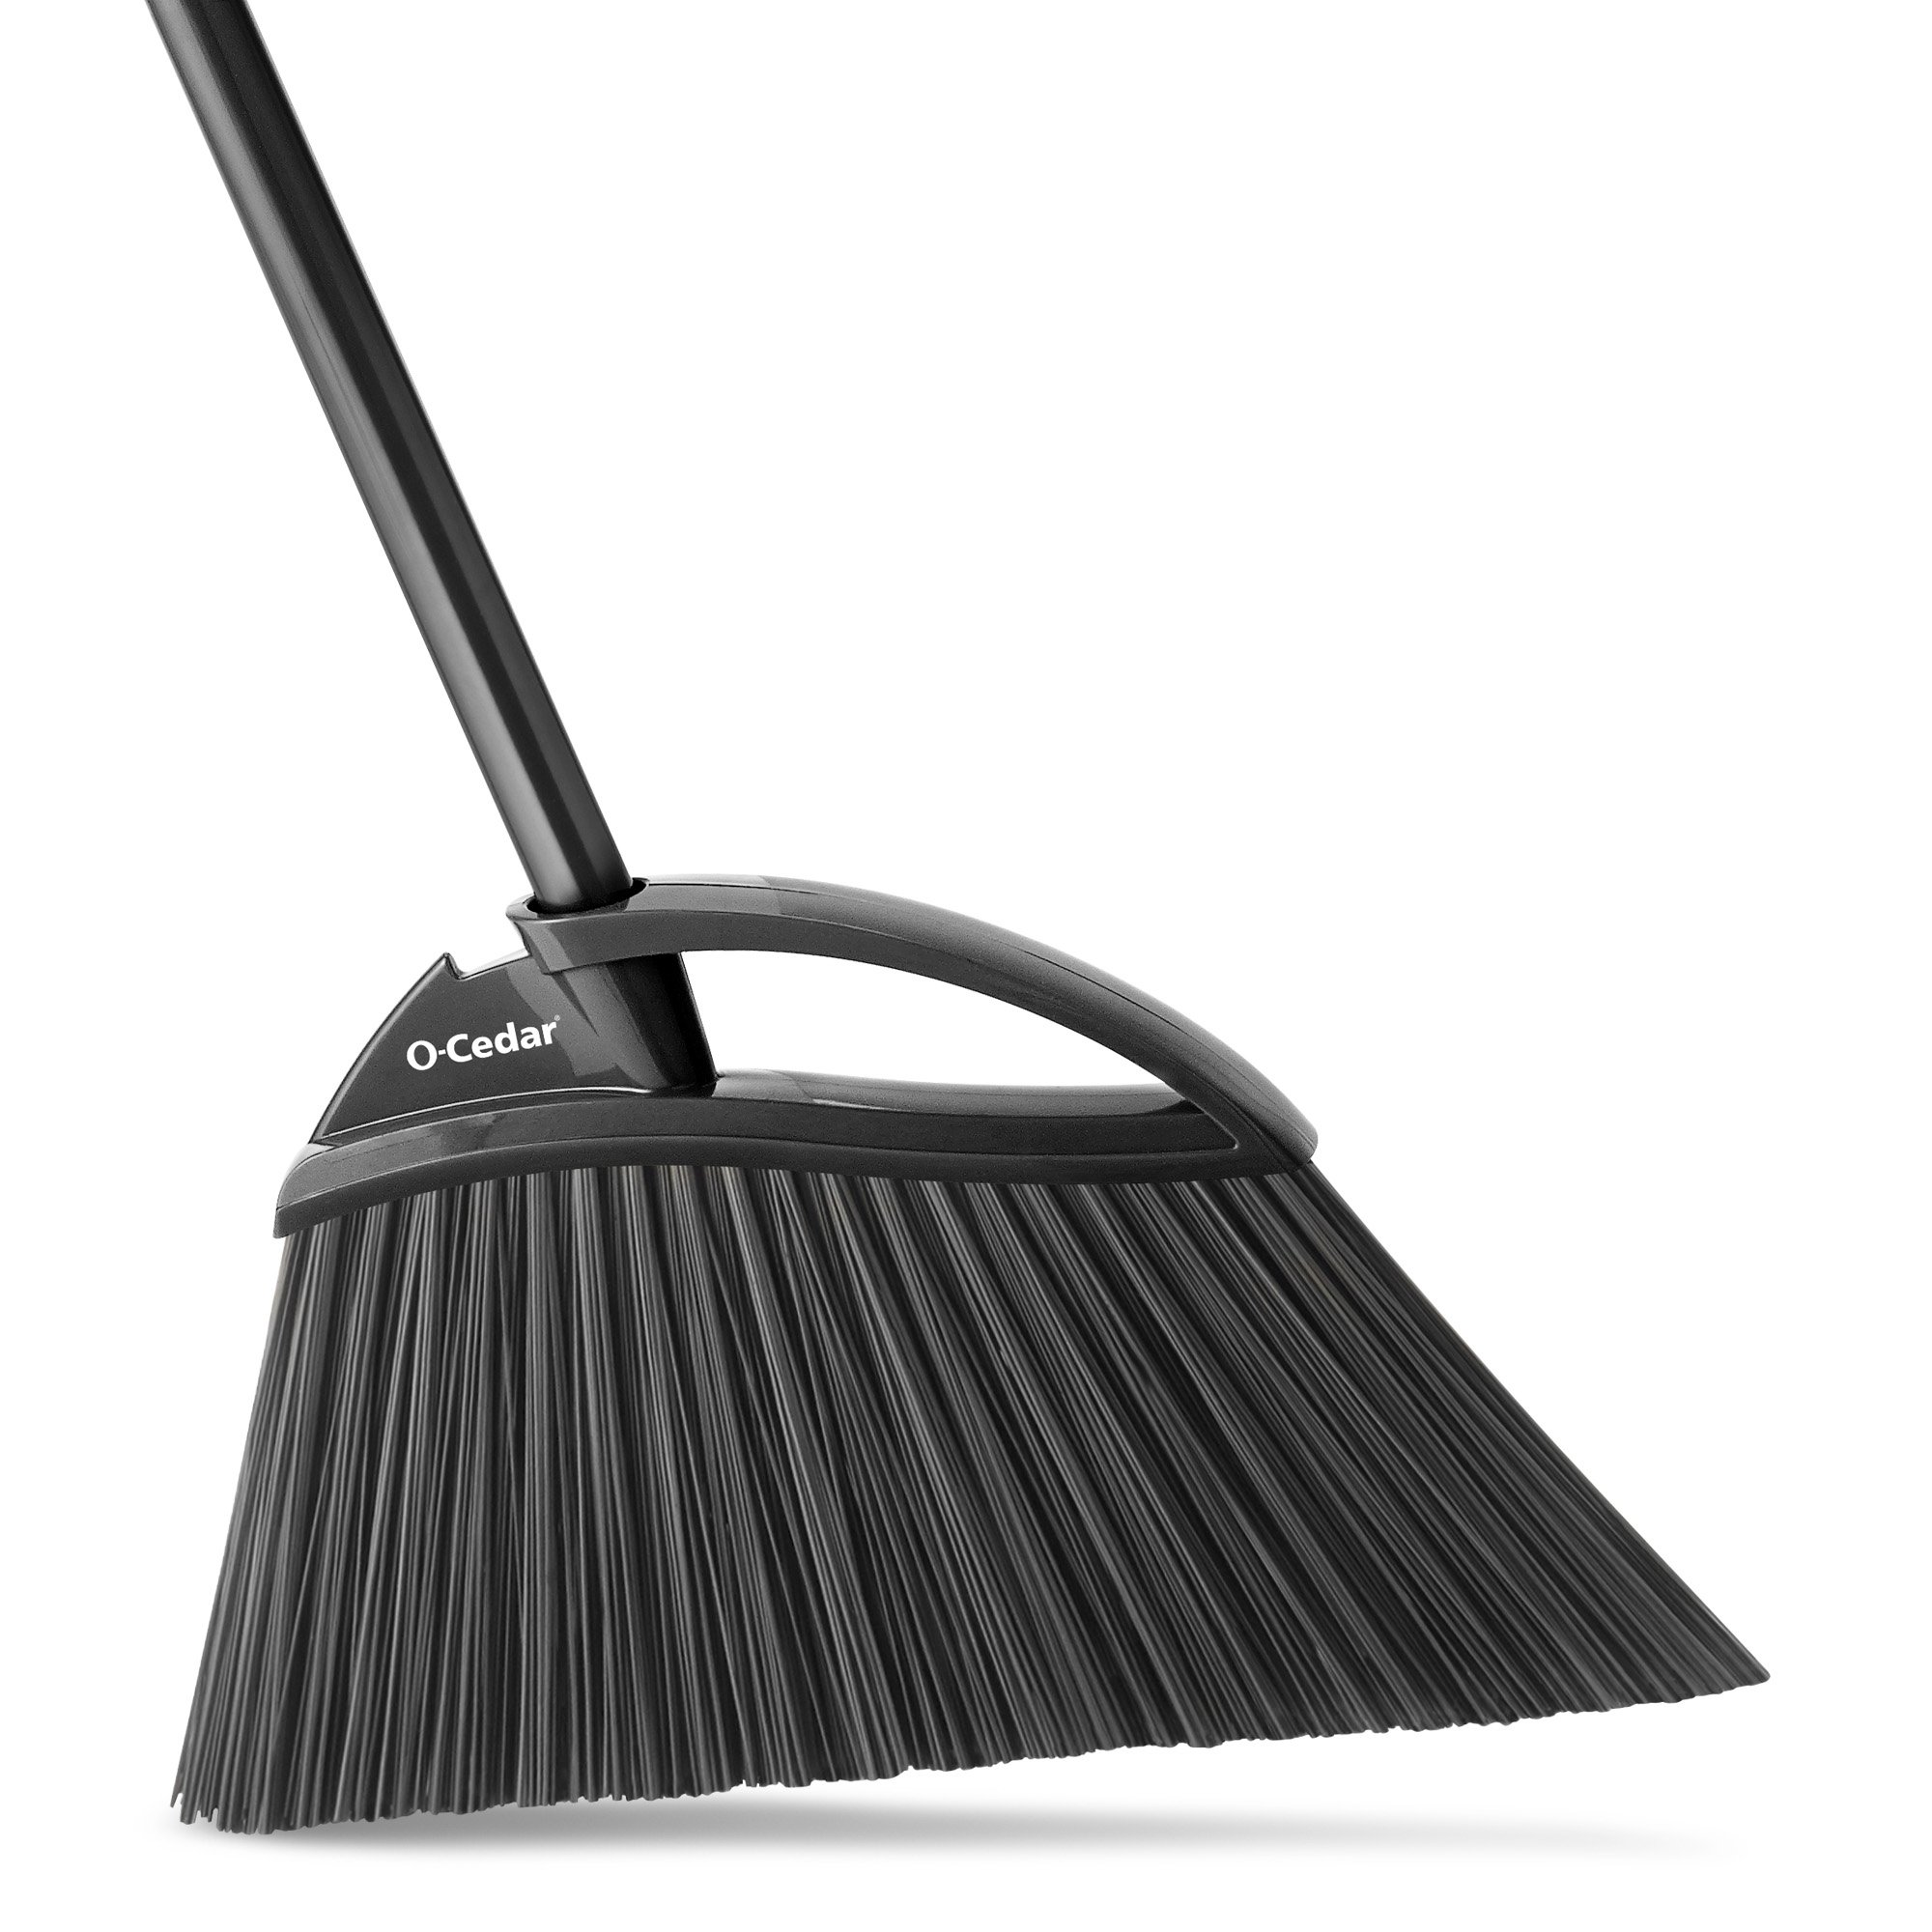 O-Cedar Outdoor Power Corner Large Angle Broom